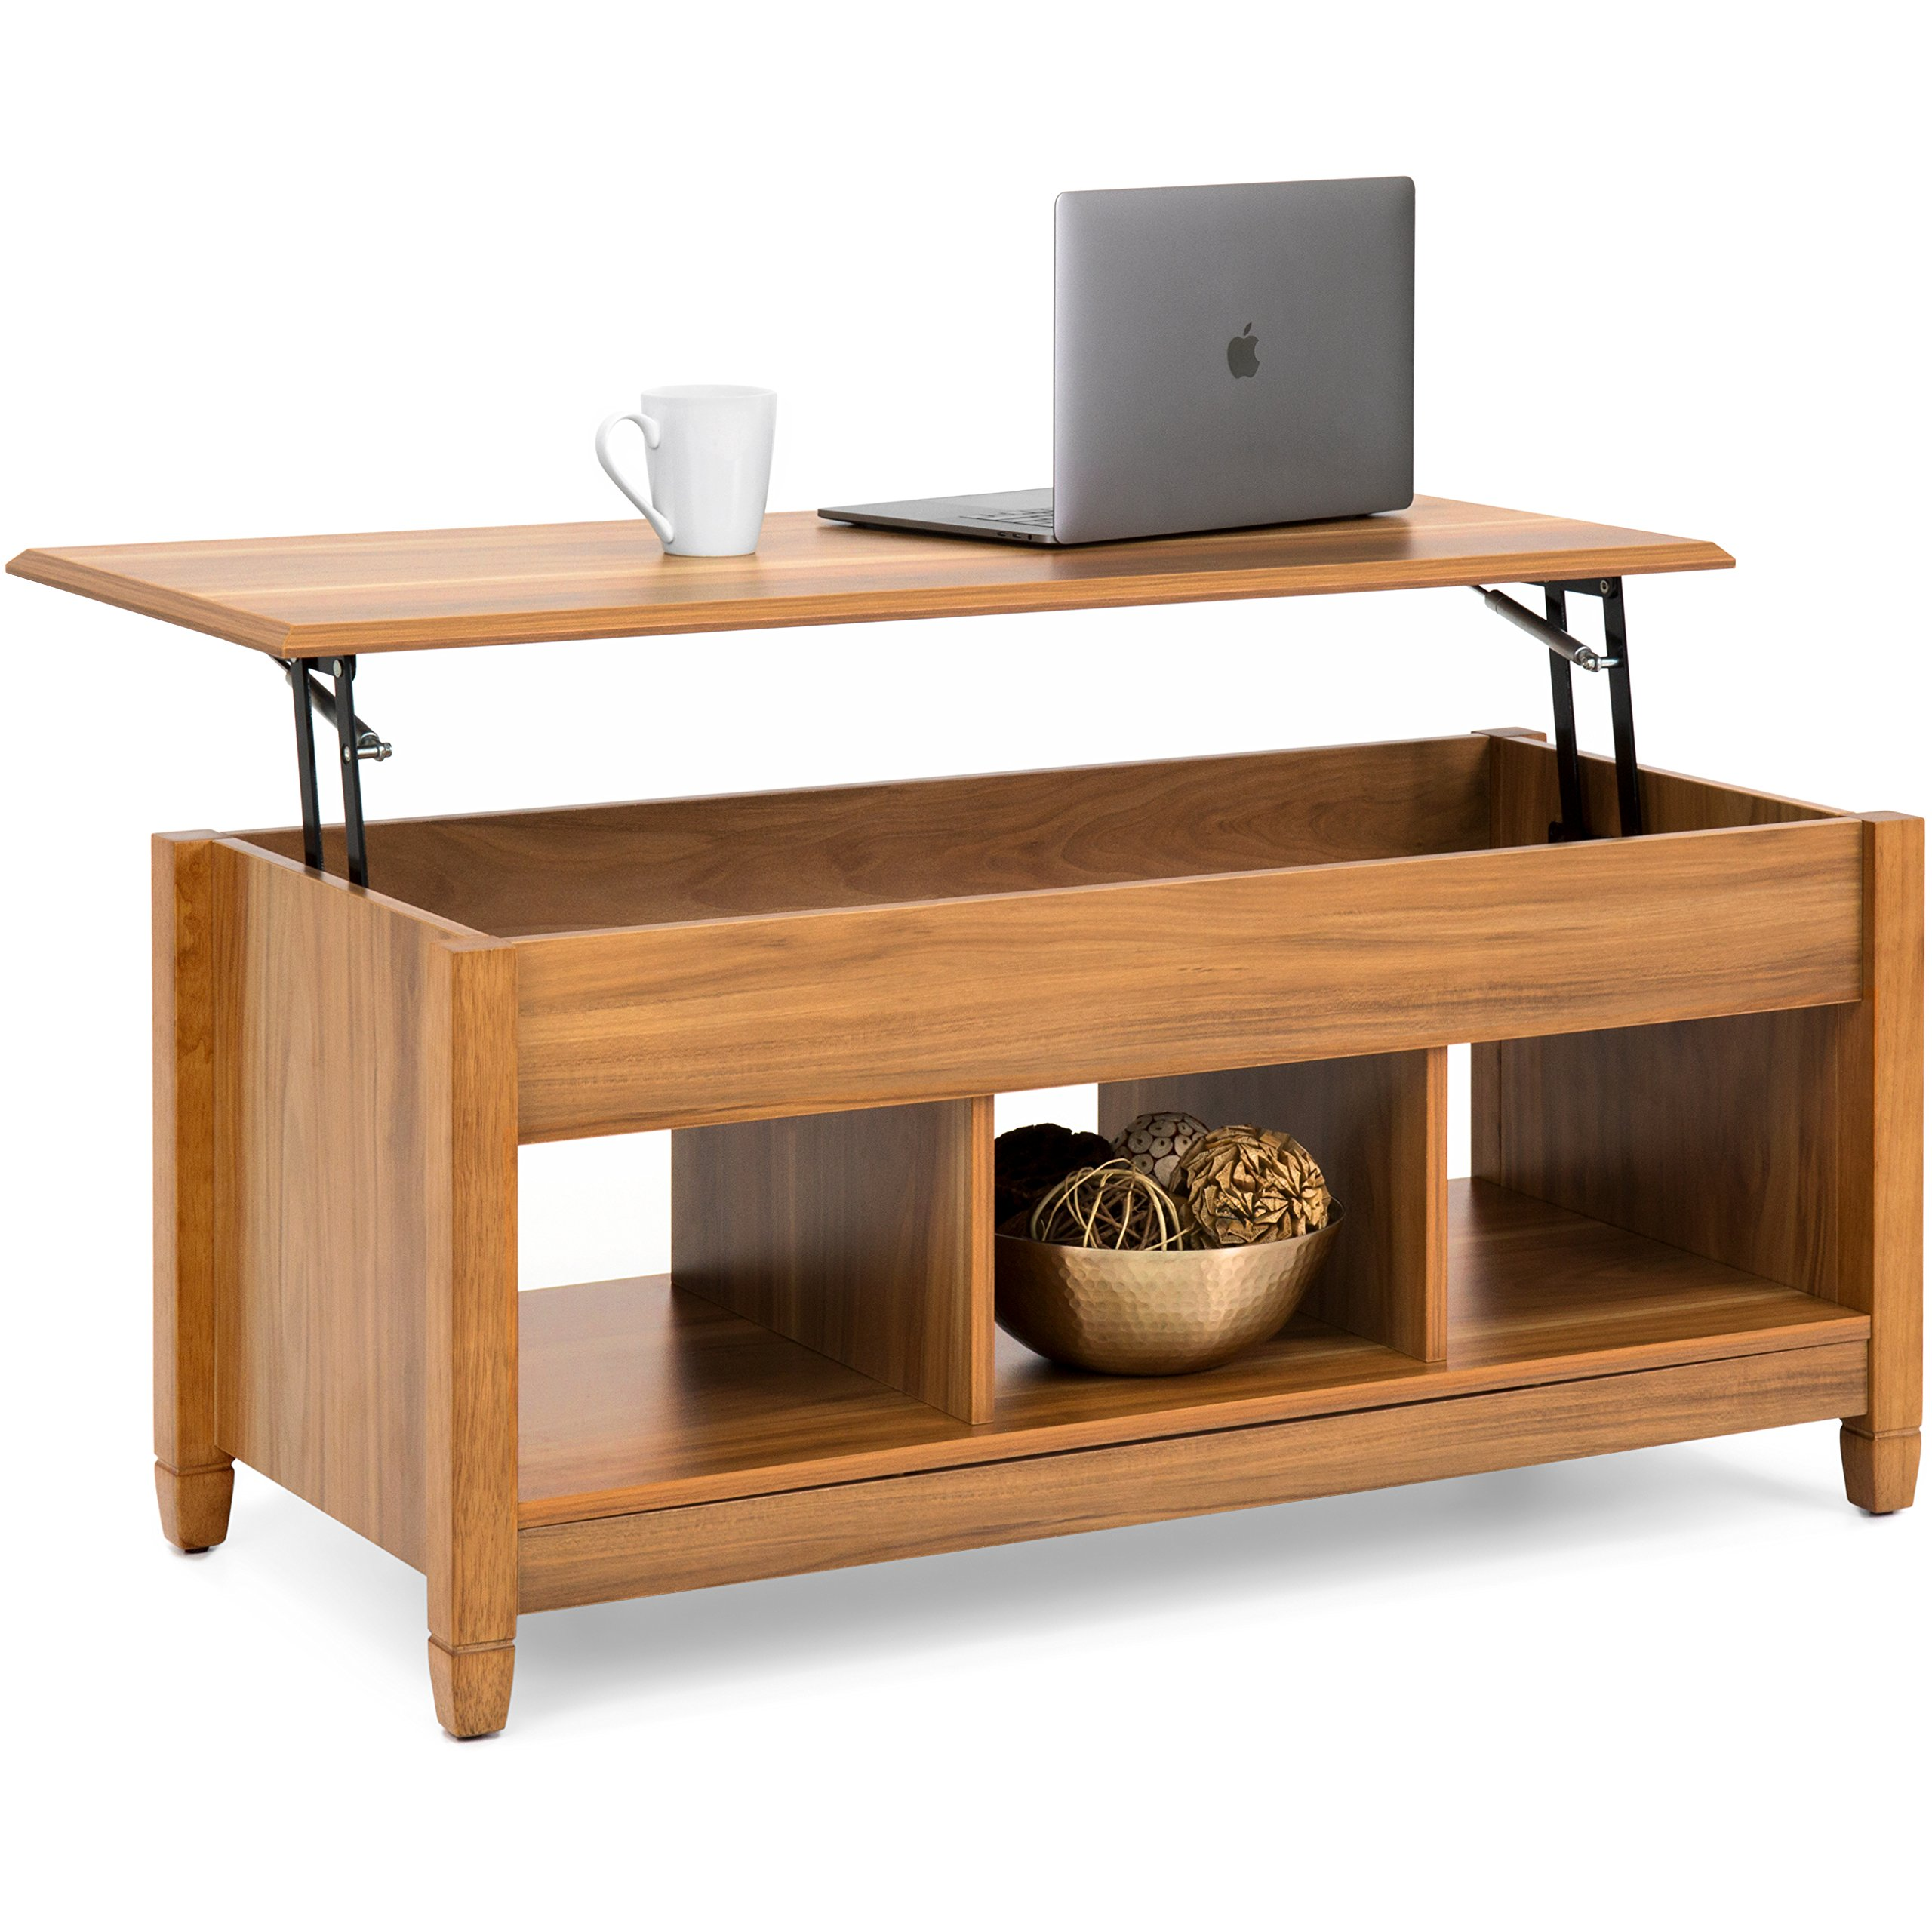 Best Choice Products Wooden Modern Multifunctional Coffee Dining Table for Living Room, Décor, Display w/Hidden Storage and Lift Tabletop, Brown by Best Choice Products